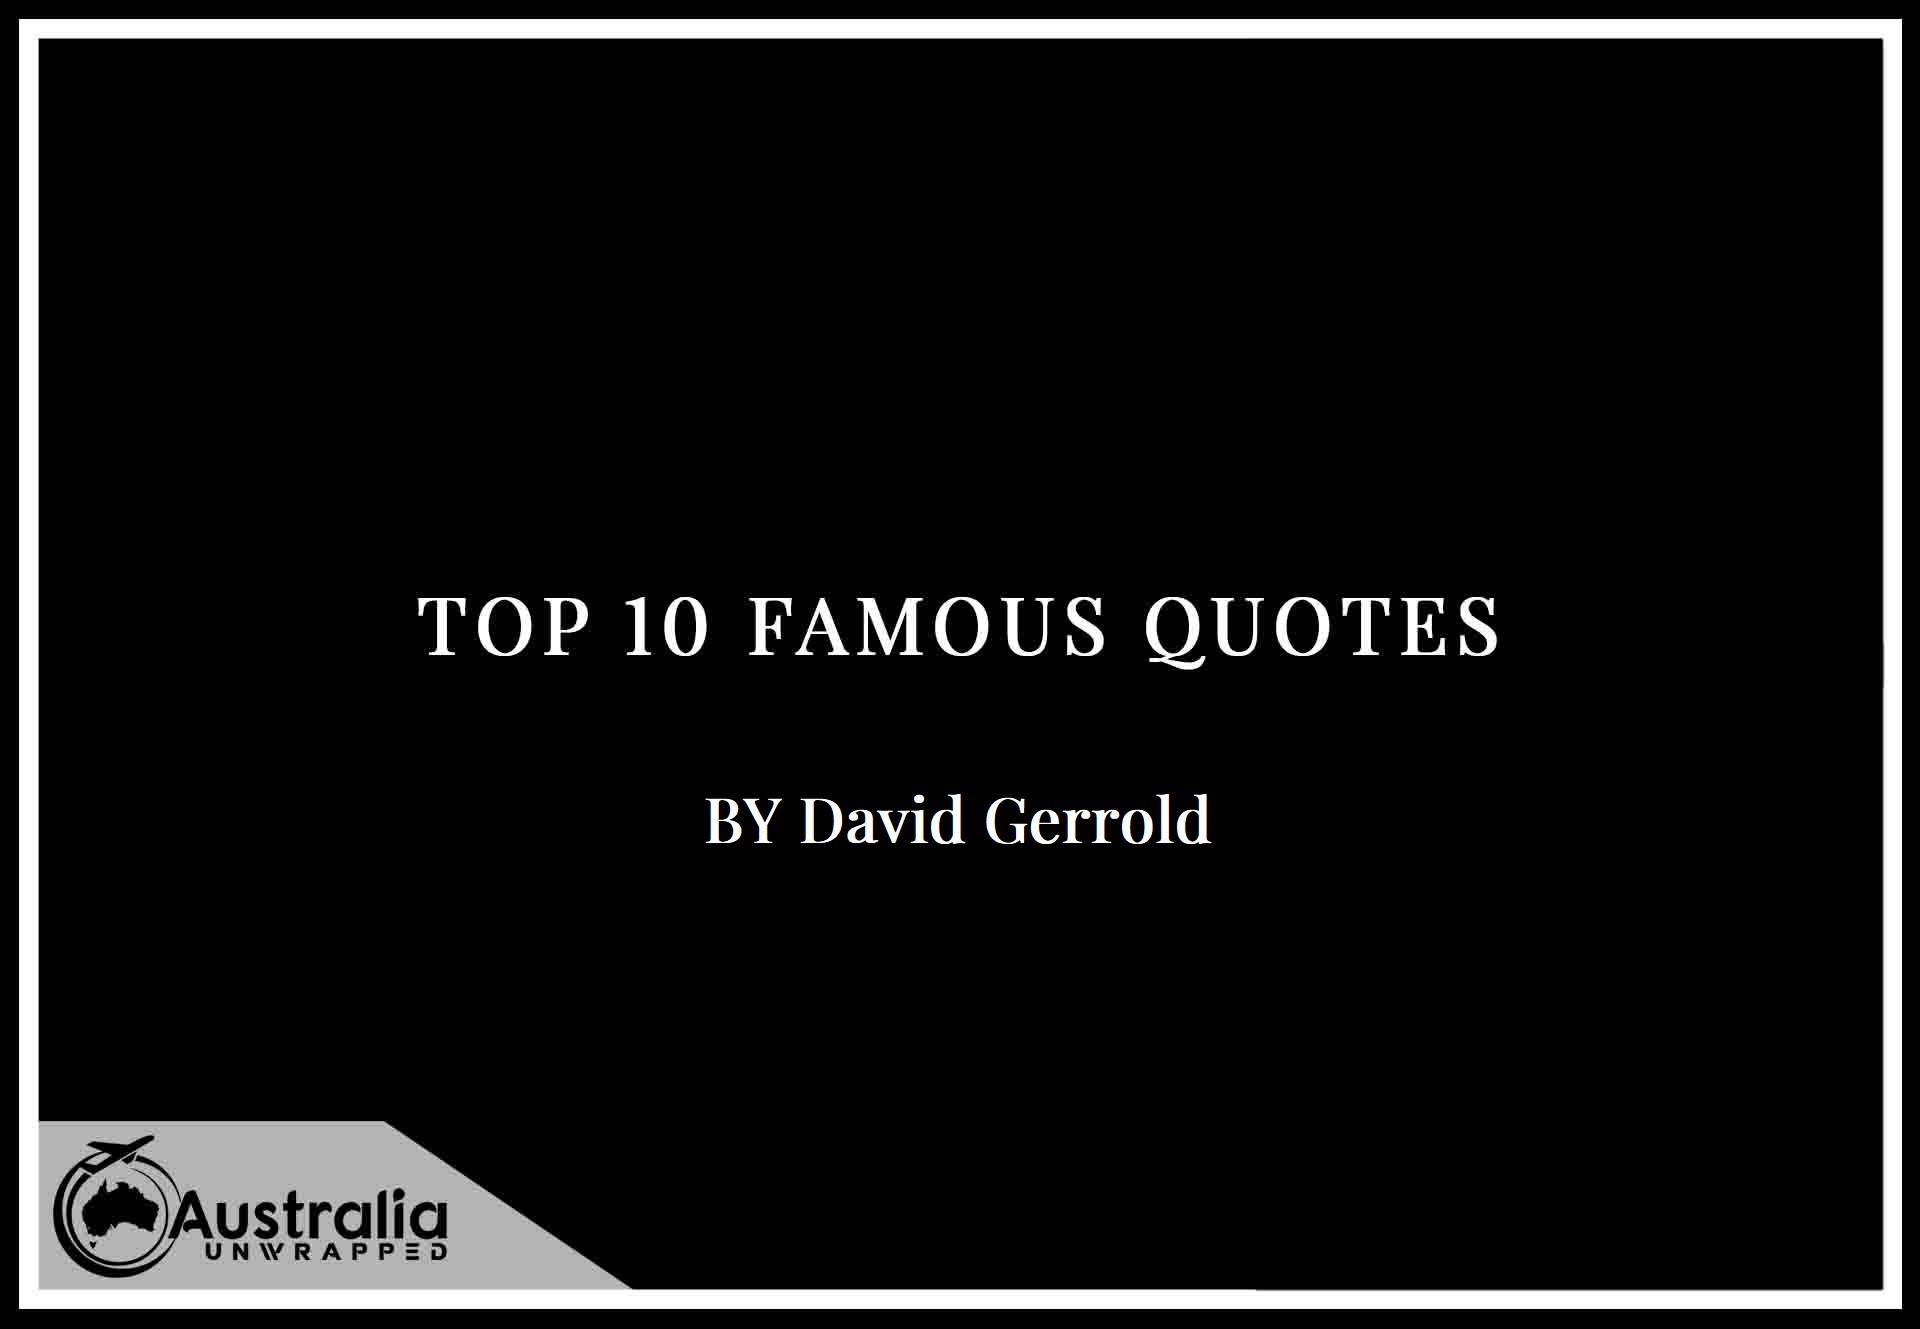 Top 10 Famous Quotes by Author David Gerrold